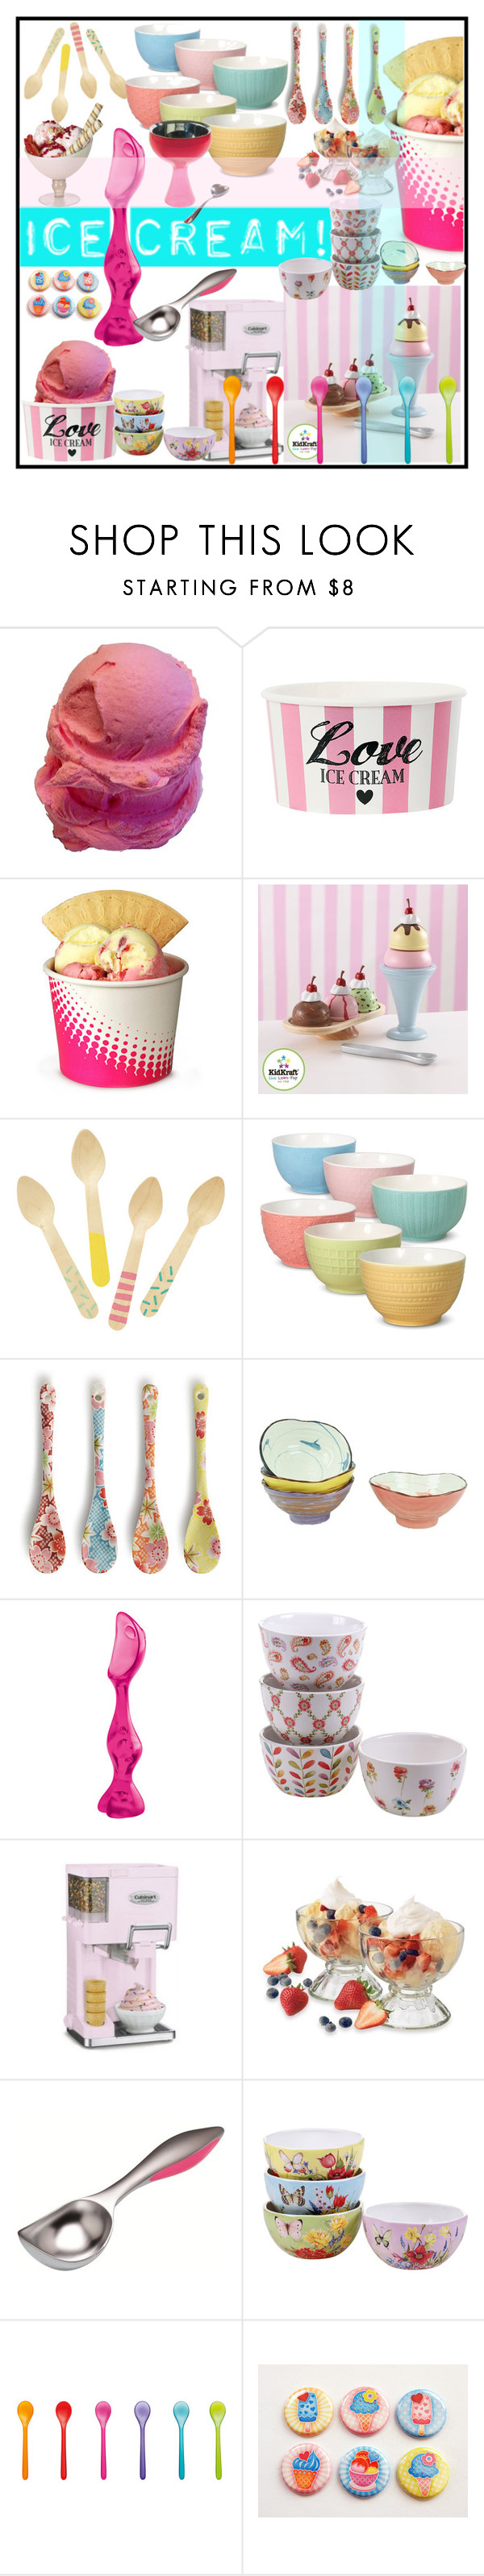 """Ice Cream"" by marionmeyer ❤ liked on Polyvore featuring interior, interiors, interior design, home, home decor, interior decorating, KidKraft, Mikasa, Miya Company and Koziol"